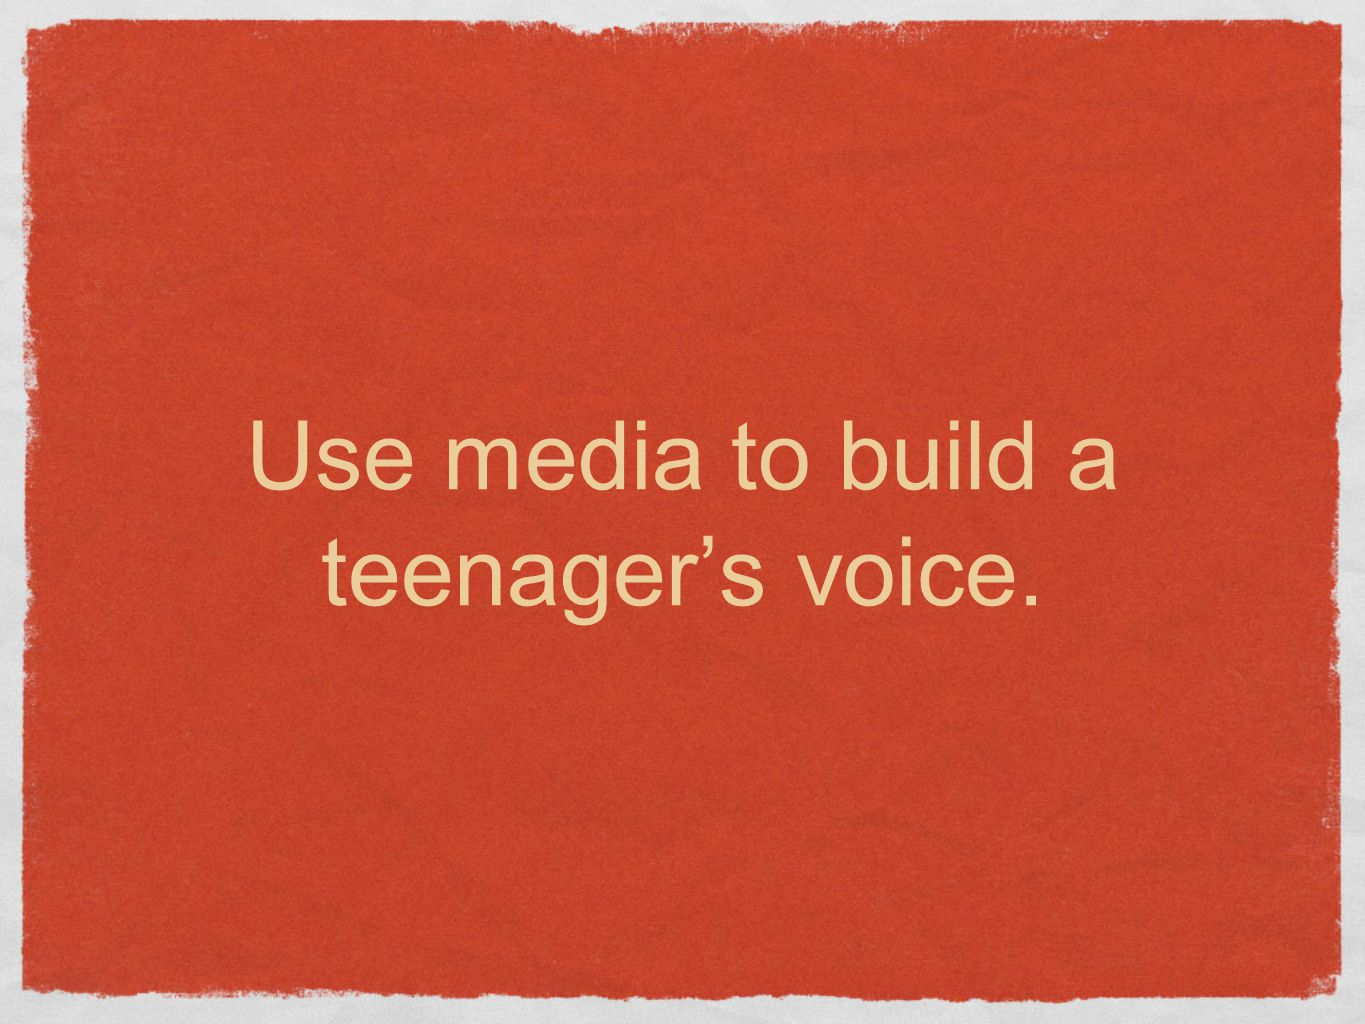 Use media to build a teenager's voice.